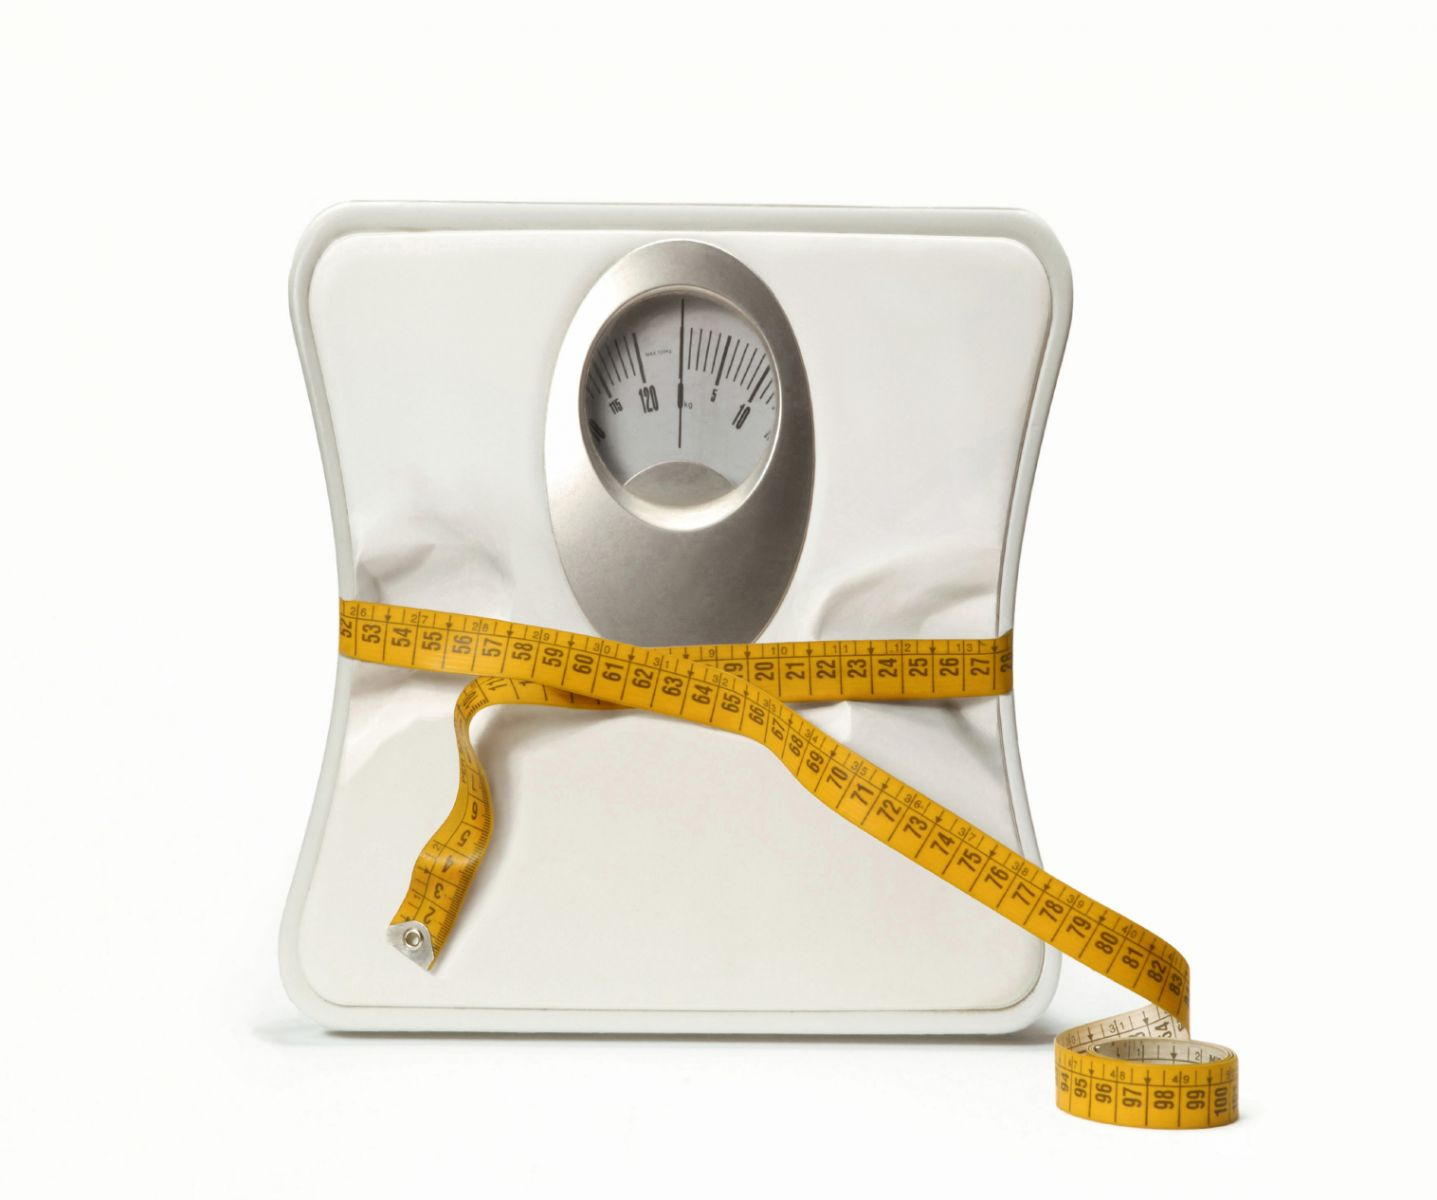 weigh-less-scale-diet